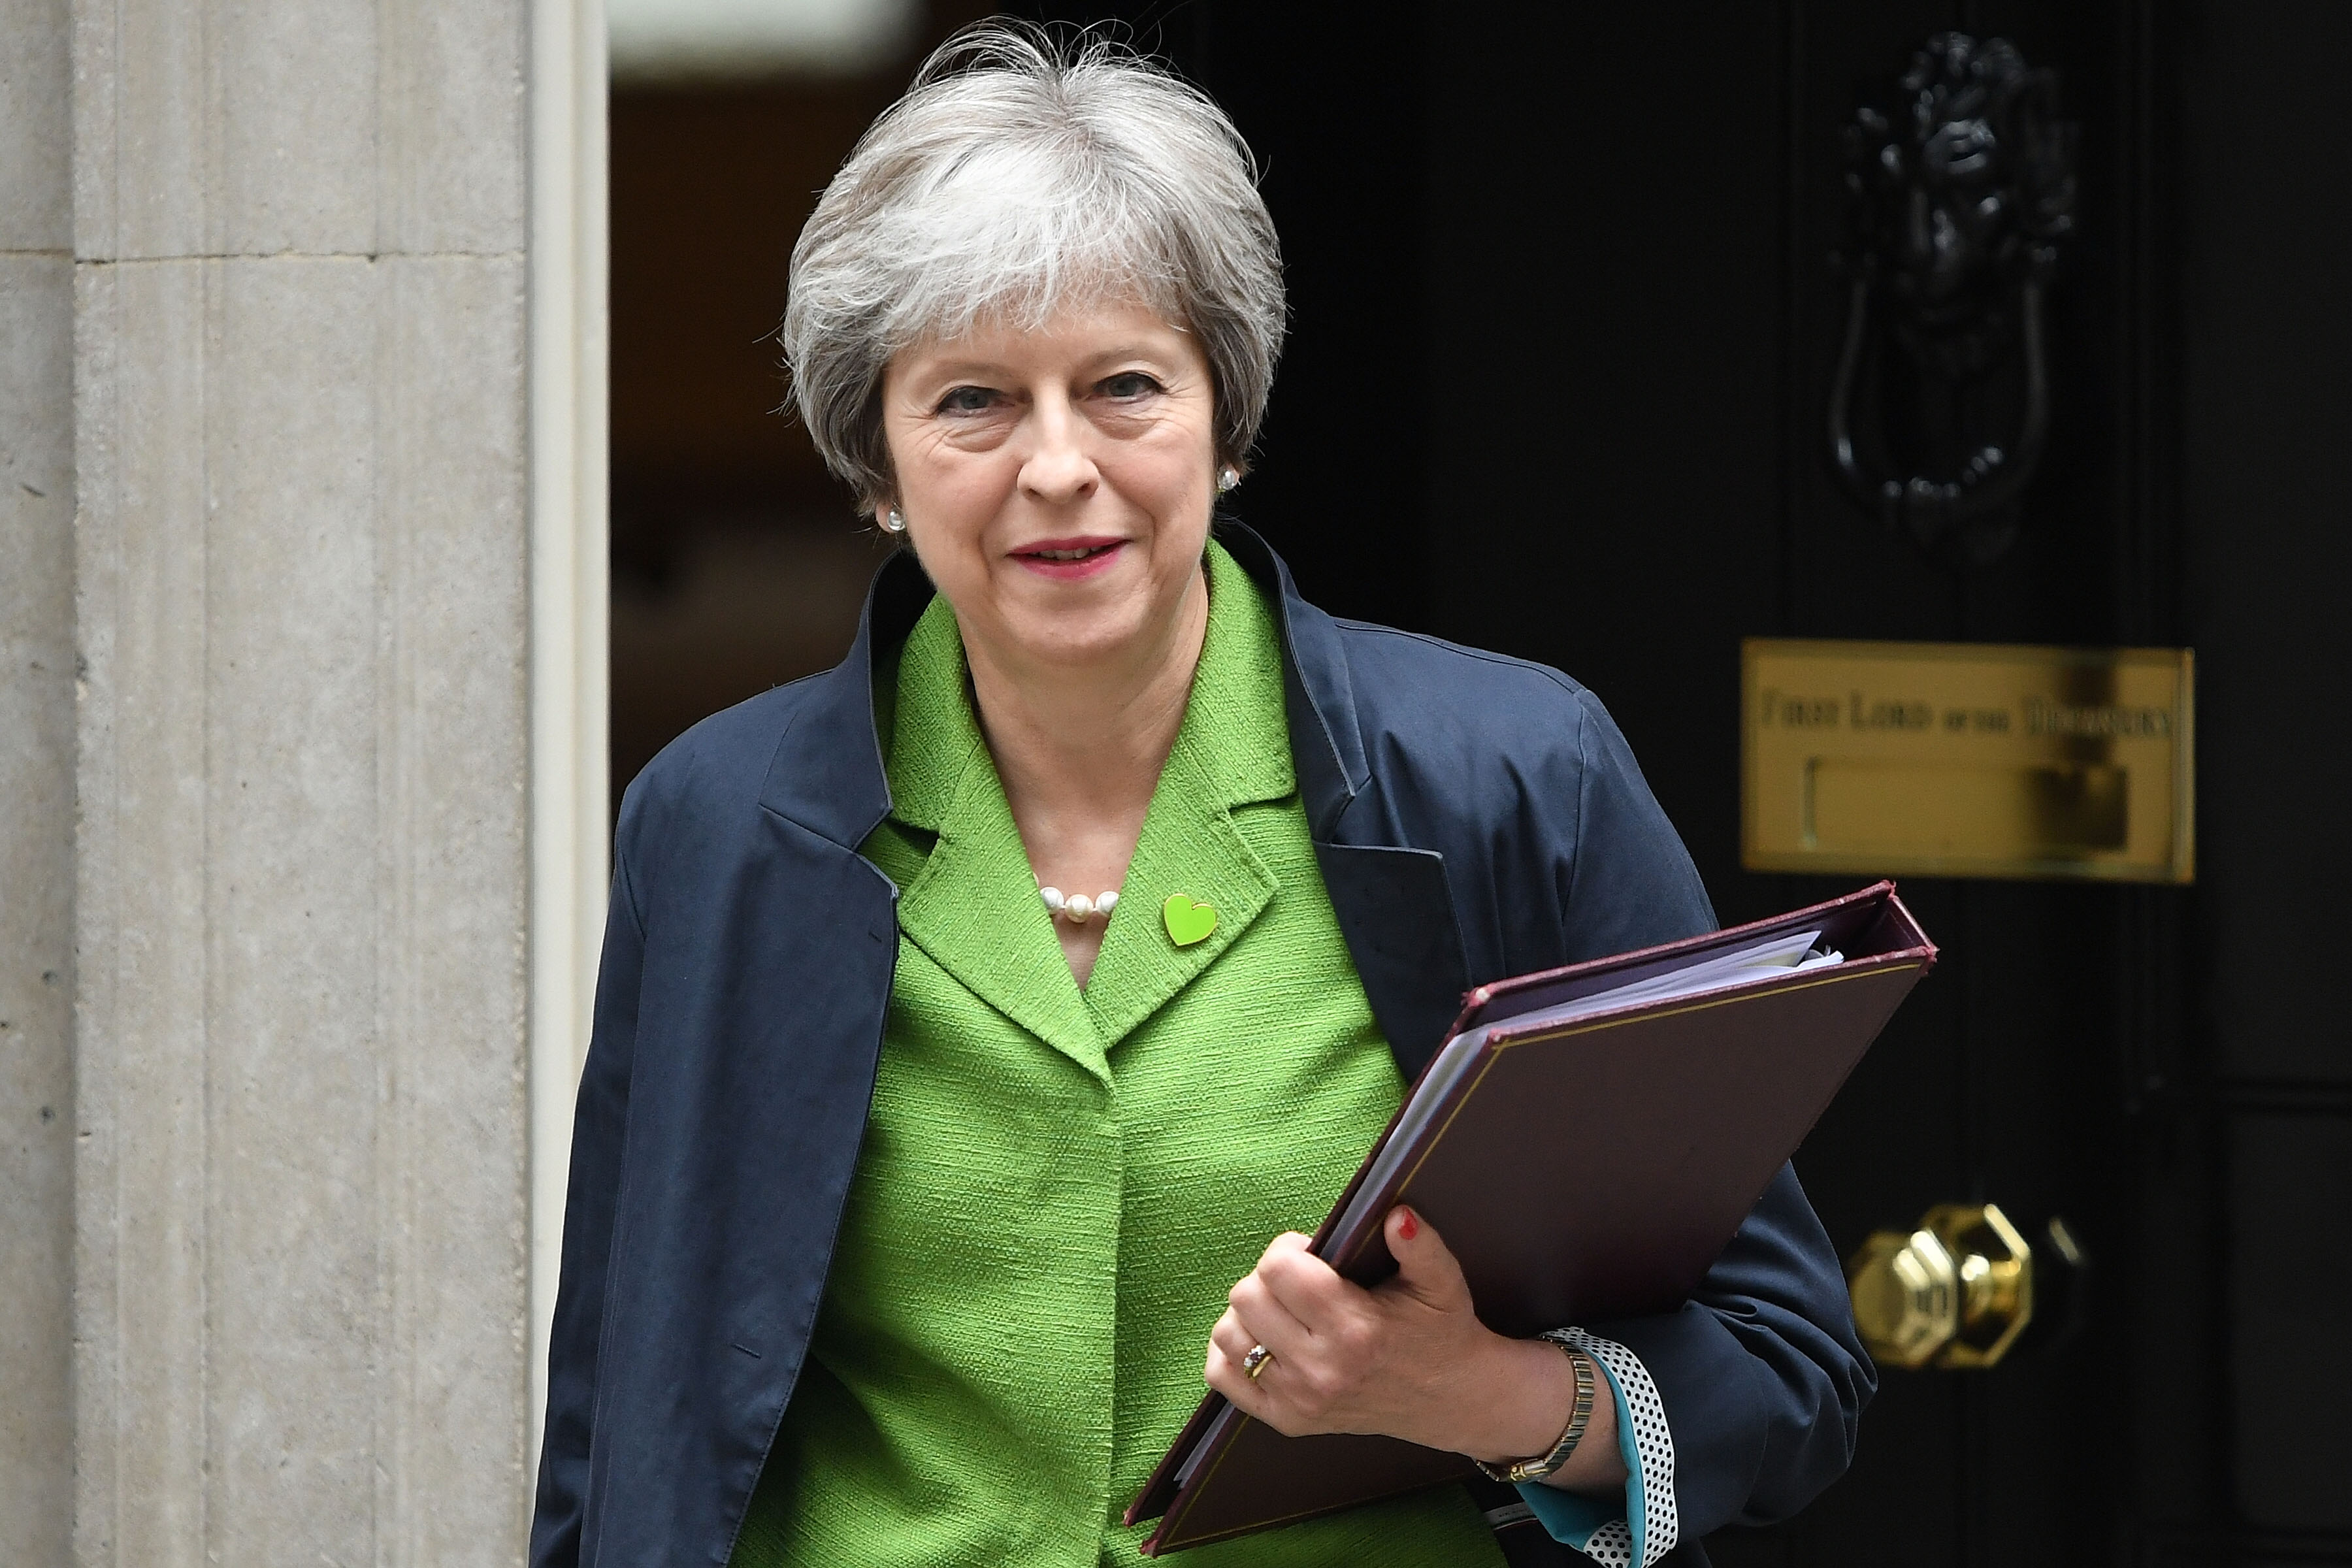 Prime Minister Theresa May leaves 10 Downing Street following a cabinet meeting on June 12, 2018 in London, England.